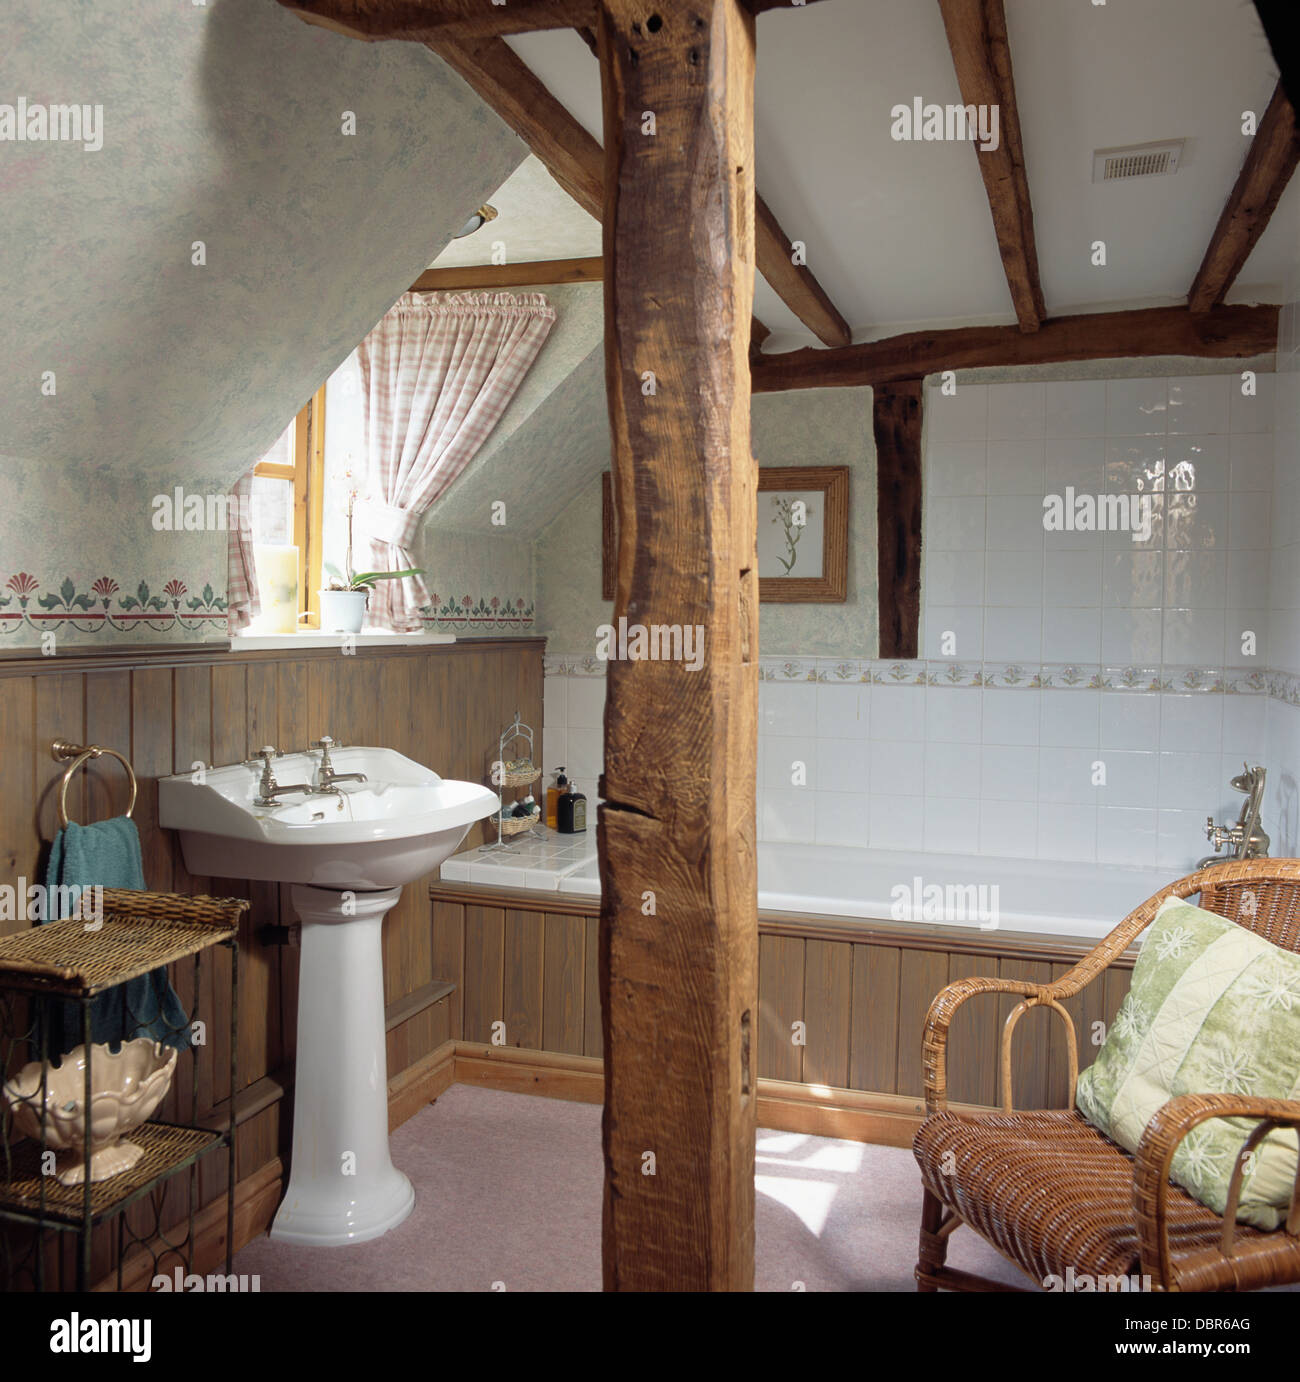 Vertical rustic wooden beam in attic bathroom with pedestal basin and stock photo royalty free - The rustic attic ...